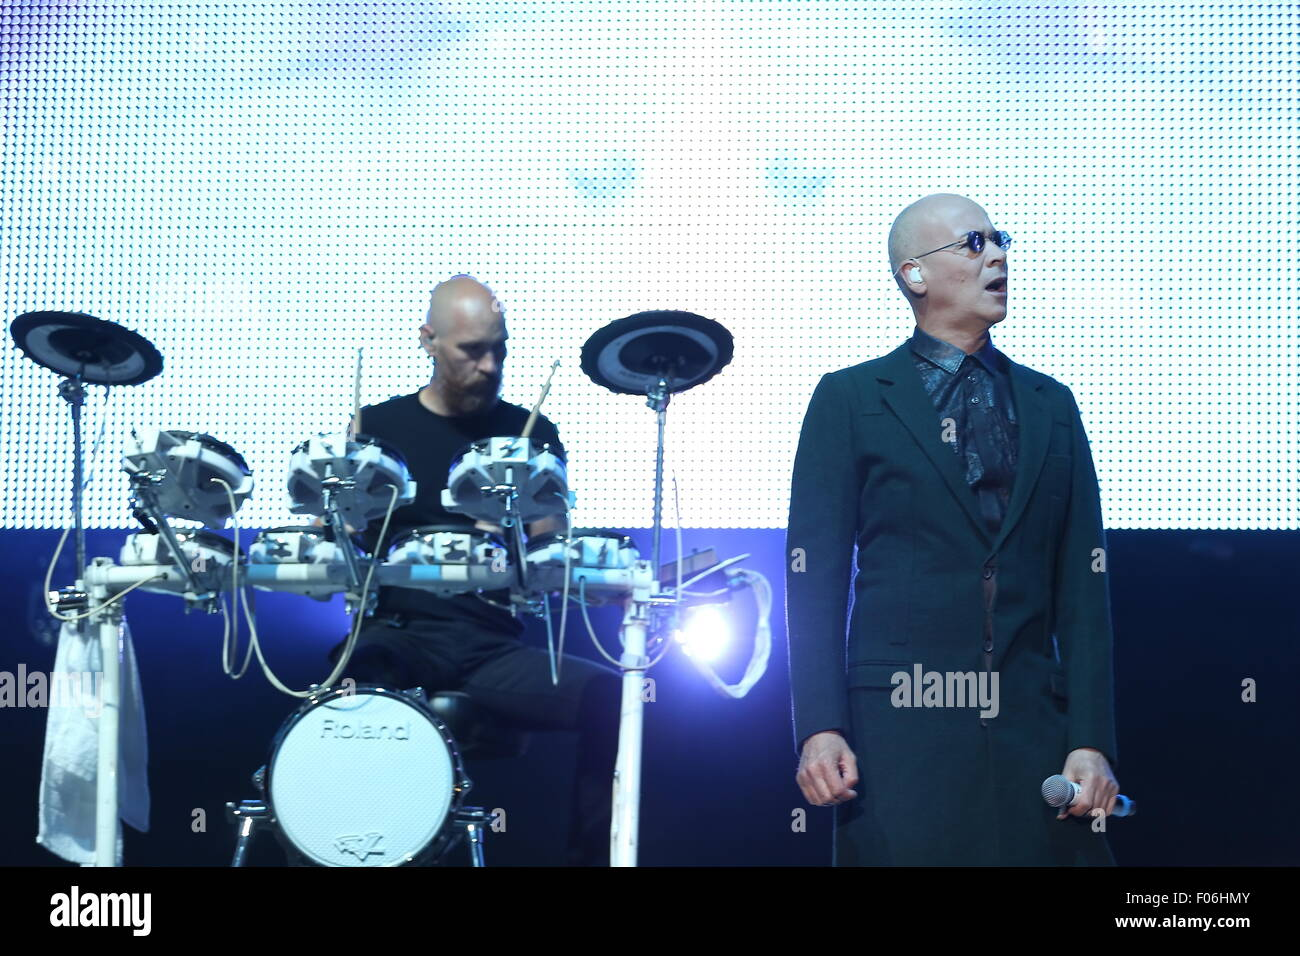 Macclesfield, Cheshire, UK. 8th August, 2015. Human League perform live at Rewind Festival North at Capesthorne - Stock Image